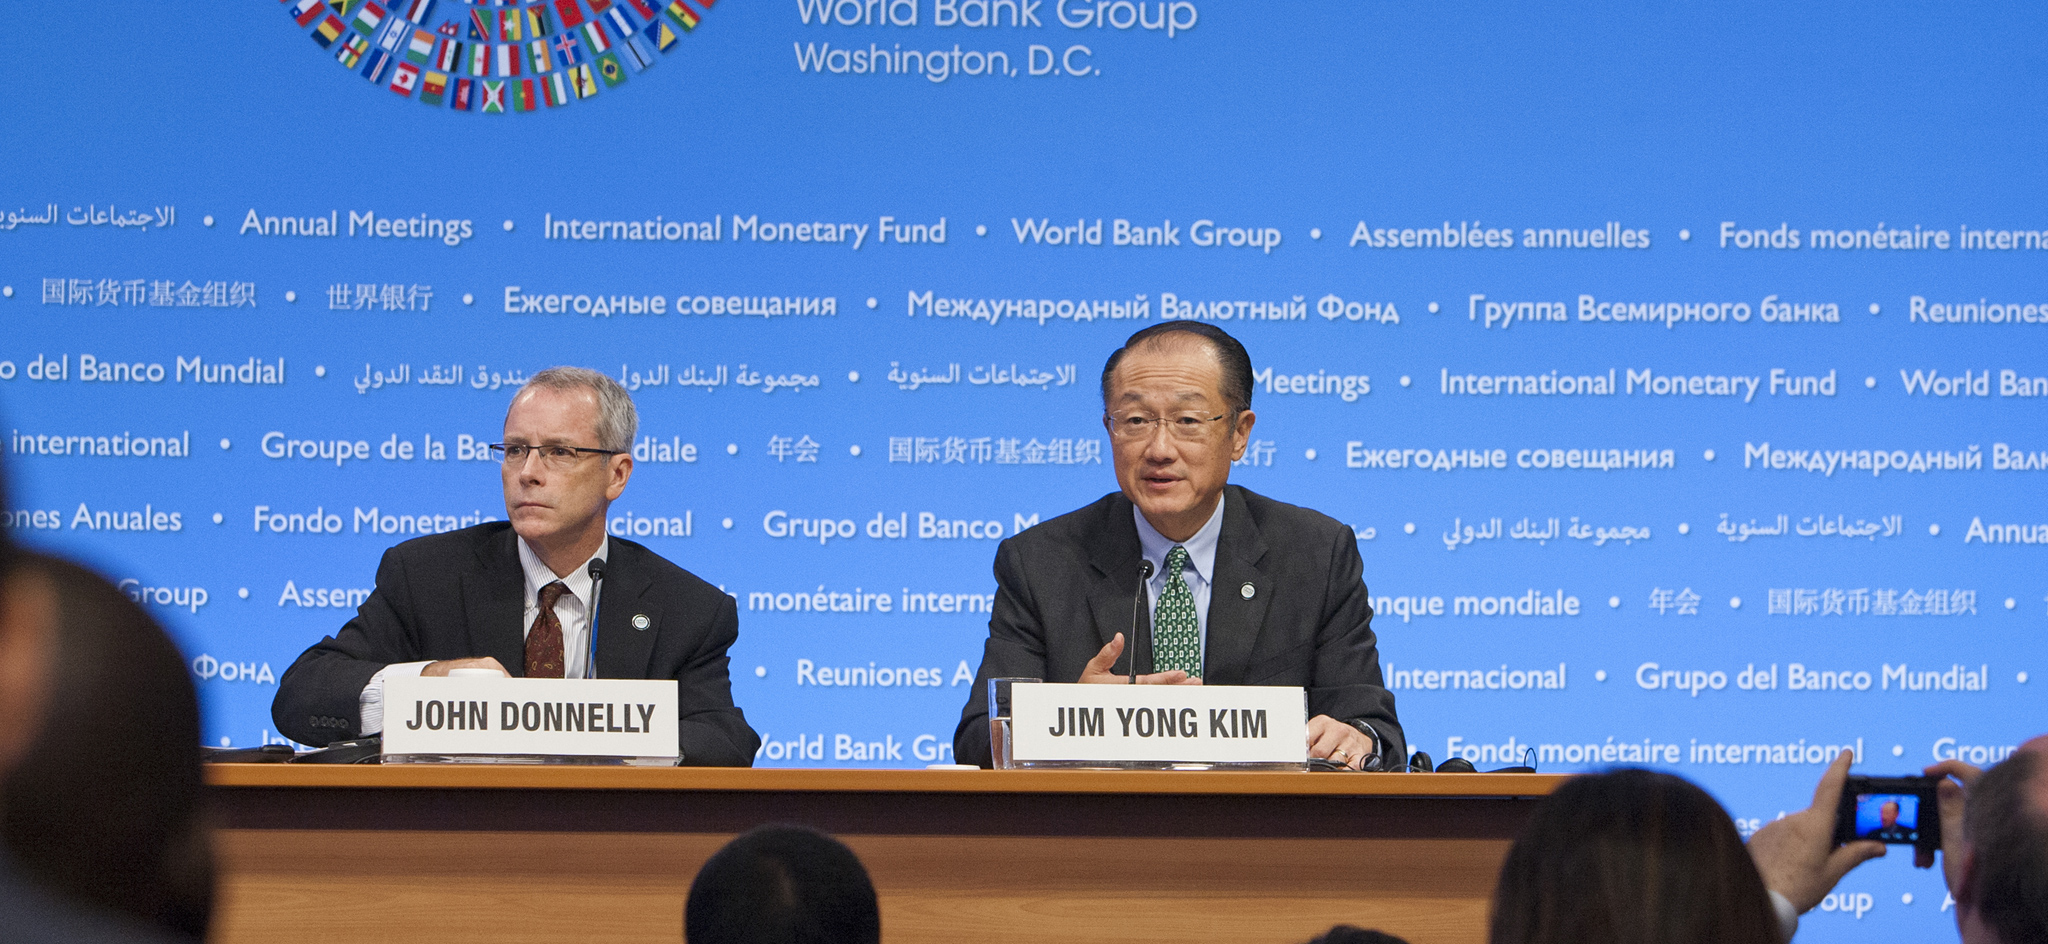 Conferencia de prensa del presidente Jim Young Kim